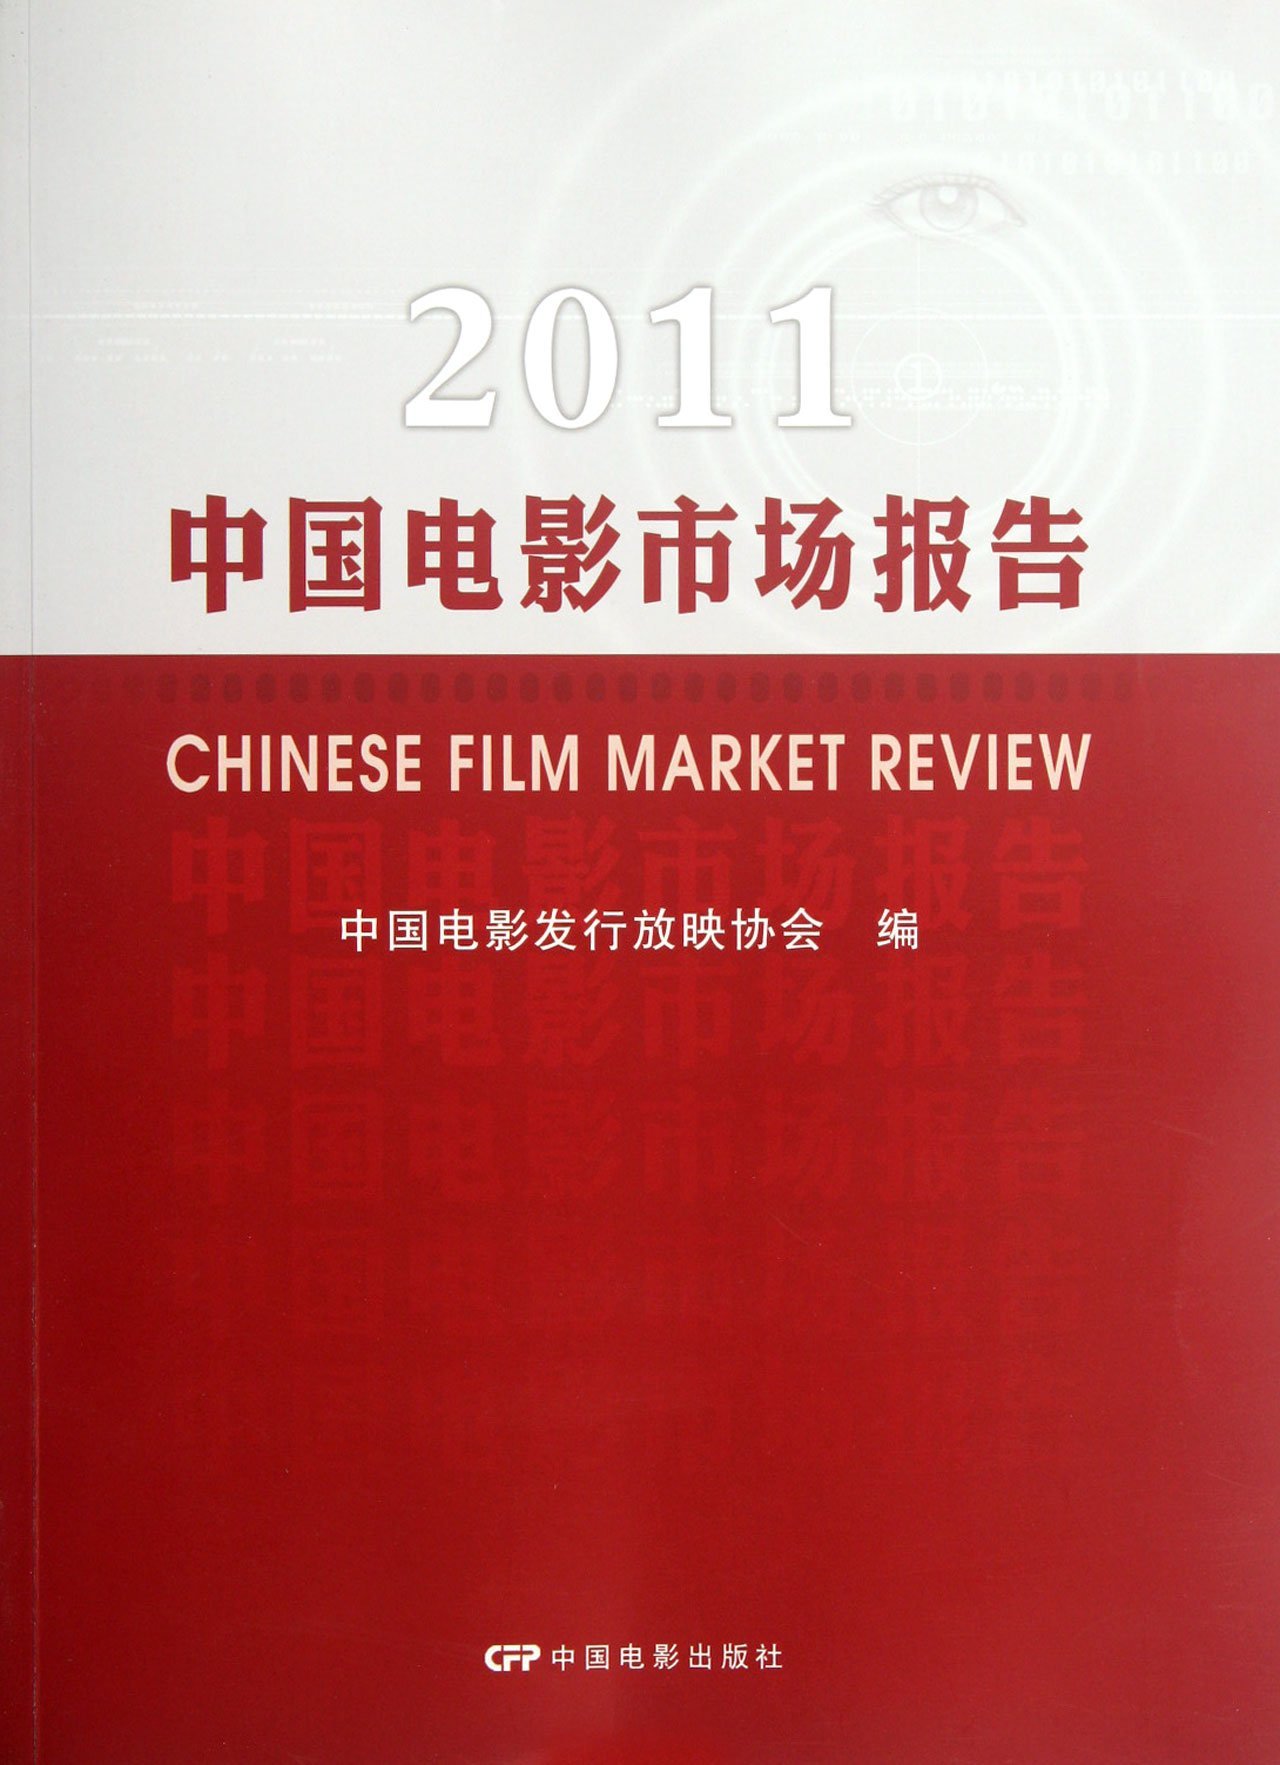 Download 2011 CHINESE FILM MARKET REVIEW (Chinese Edition) pdf